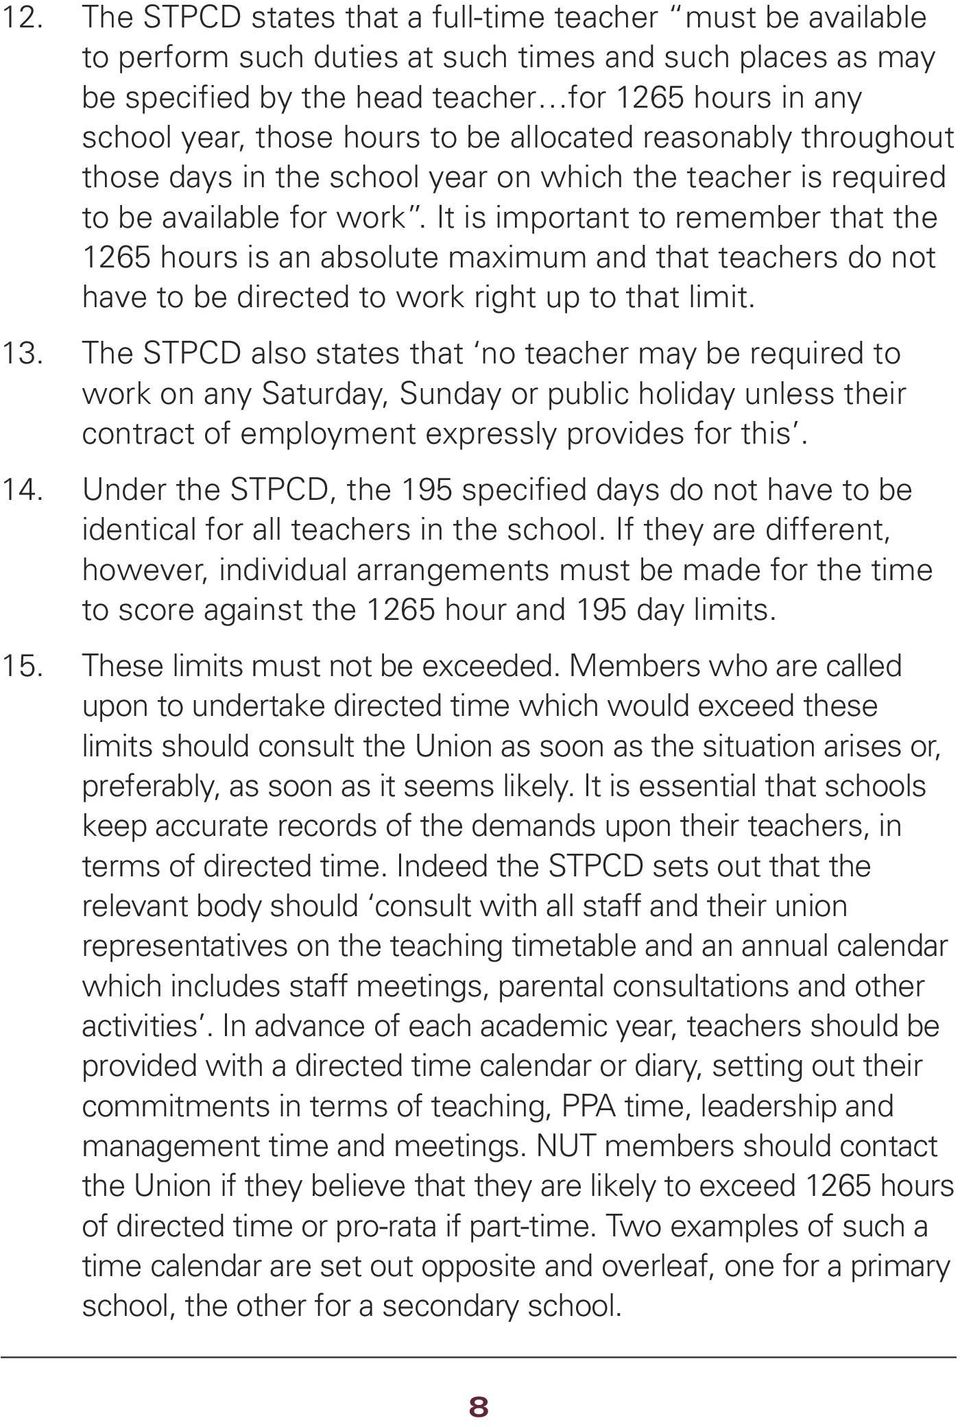 It is important to remember that the 1265 hours is an absolute maximum and that teachers do not have to be directed to work right up to that limit. 13.